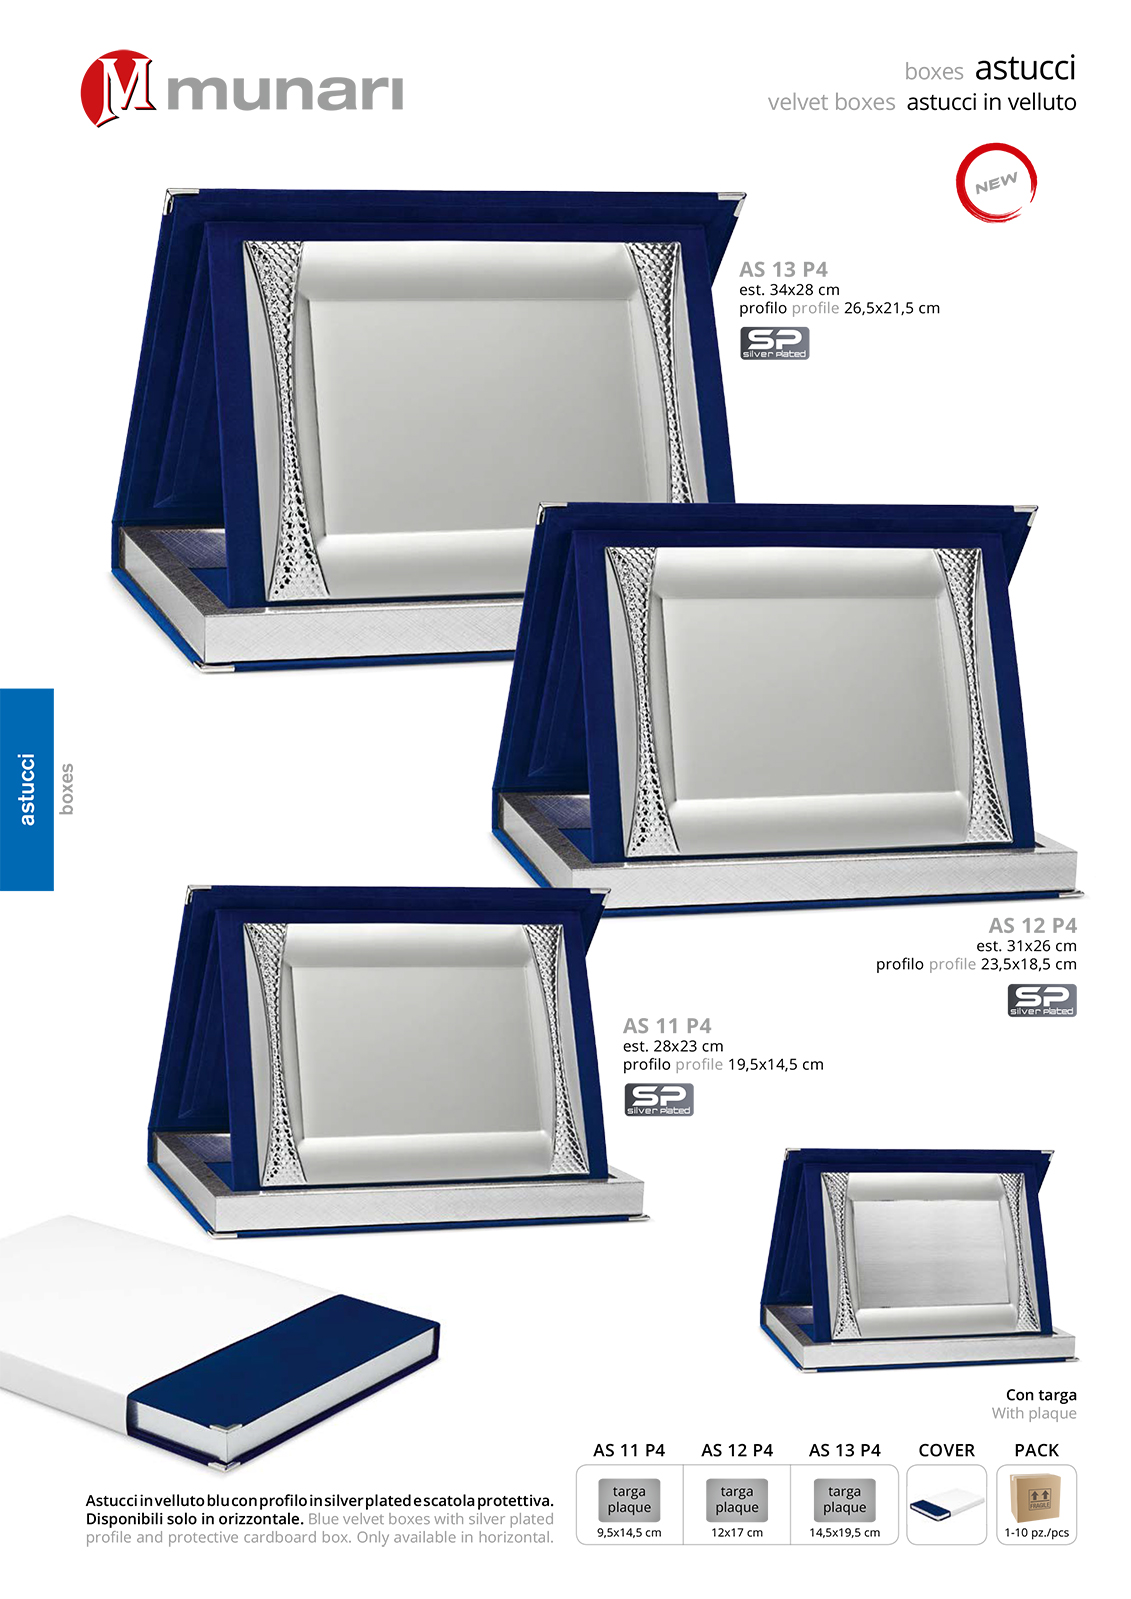 Blue Velvet Boxes series AS 10 P4 with Silver Plated Plaque